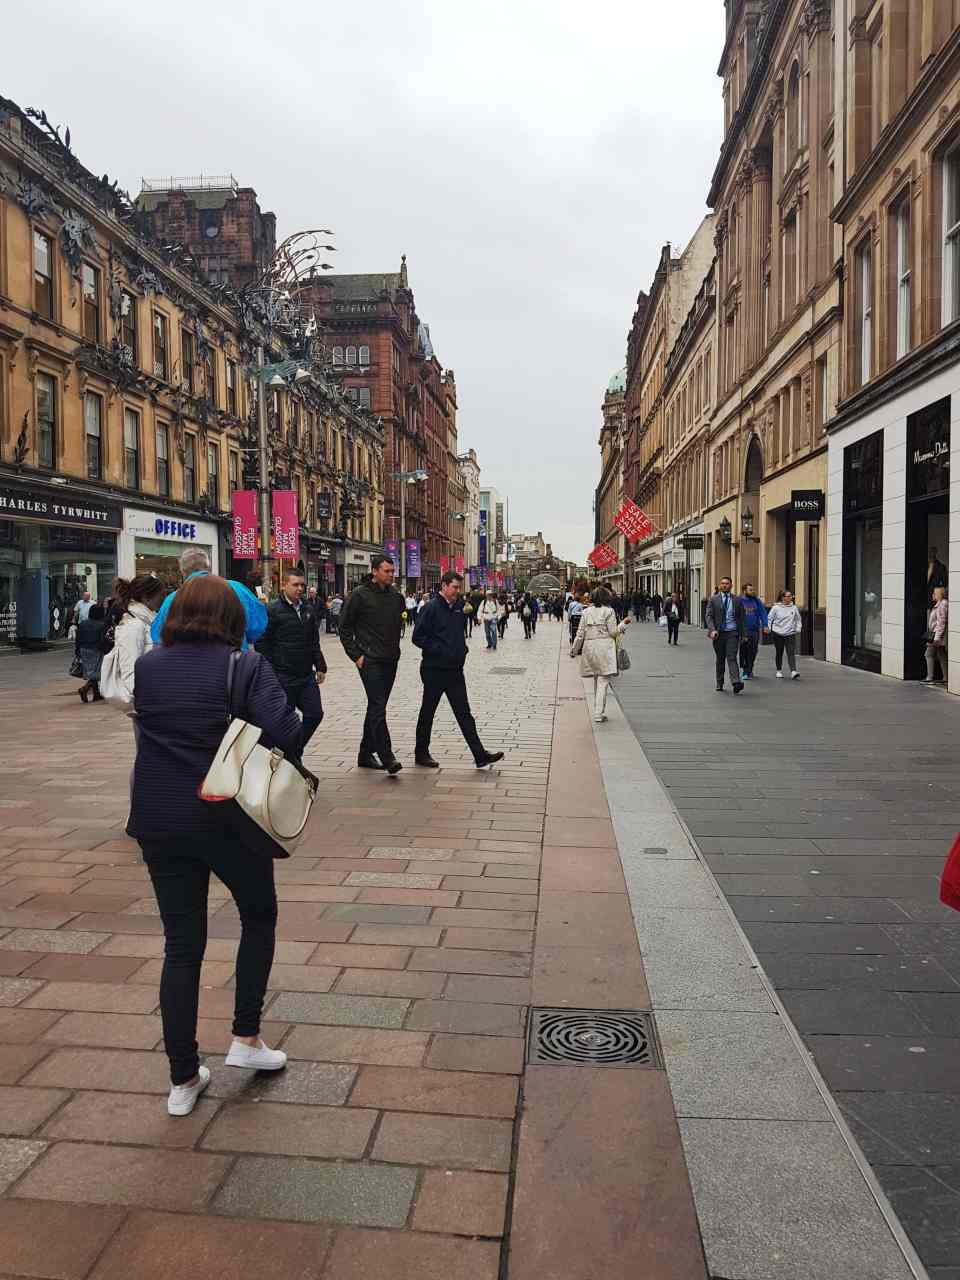 A line of shops at Buchanan Street, Glasgow, #fromthecornertable